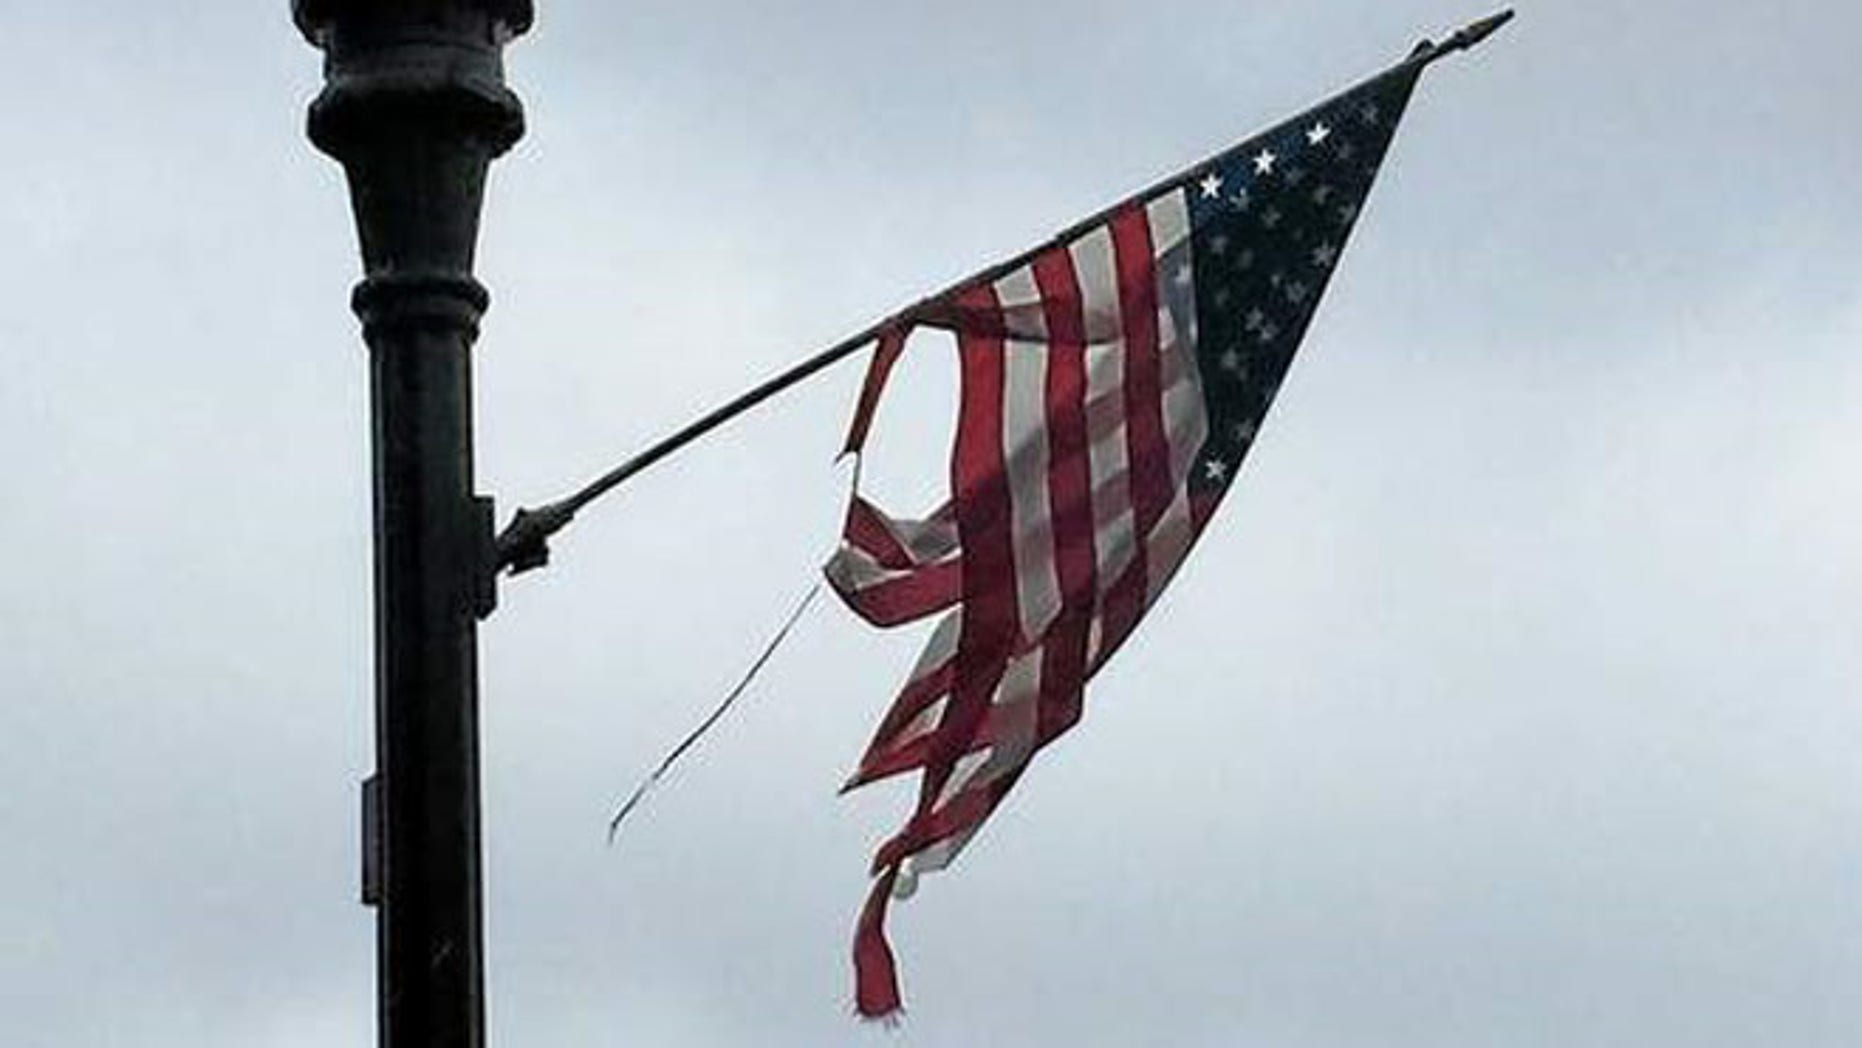 Most of the two dozen flags hanging from the black light posts that line Main Street in Derby, Conn. are either tattered and torn, have broken sticks that have been pieced together with duct tape or are laying on the ground. (New Haven Register)